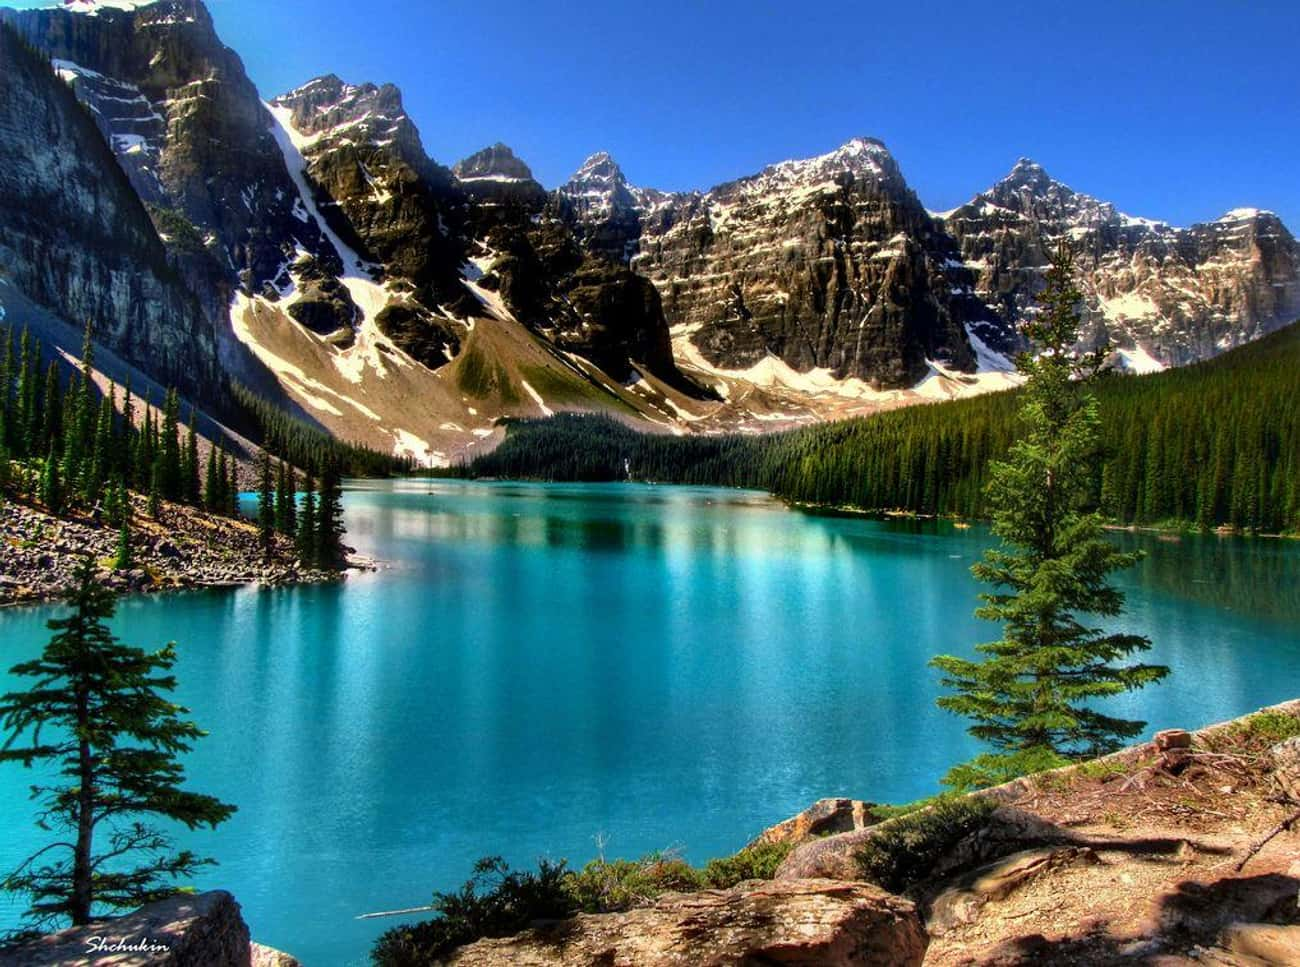 Canadian Rockies is listed (or ranked) 1 on the list The Most Stunningly Gorgeous Places on Earth